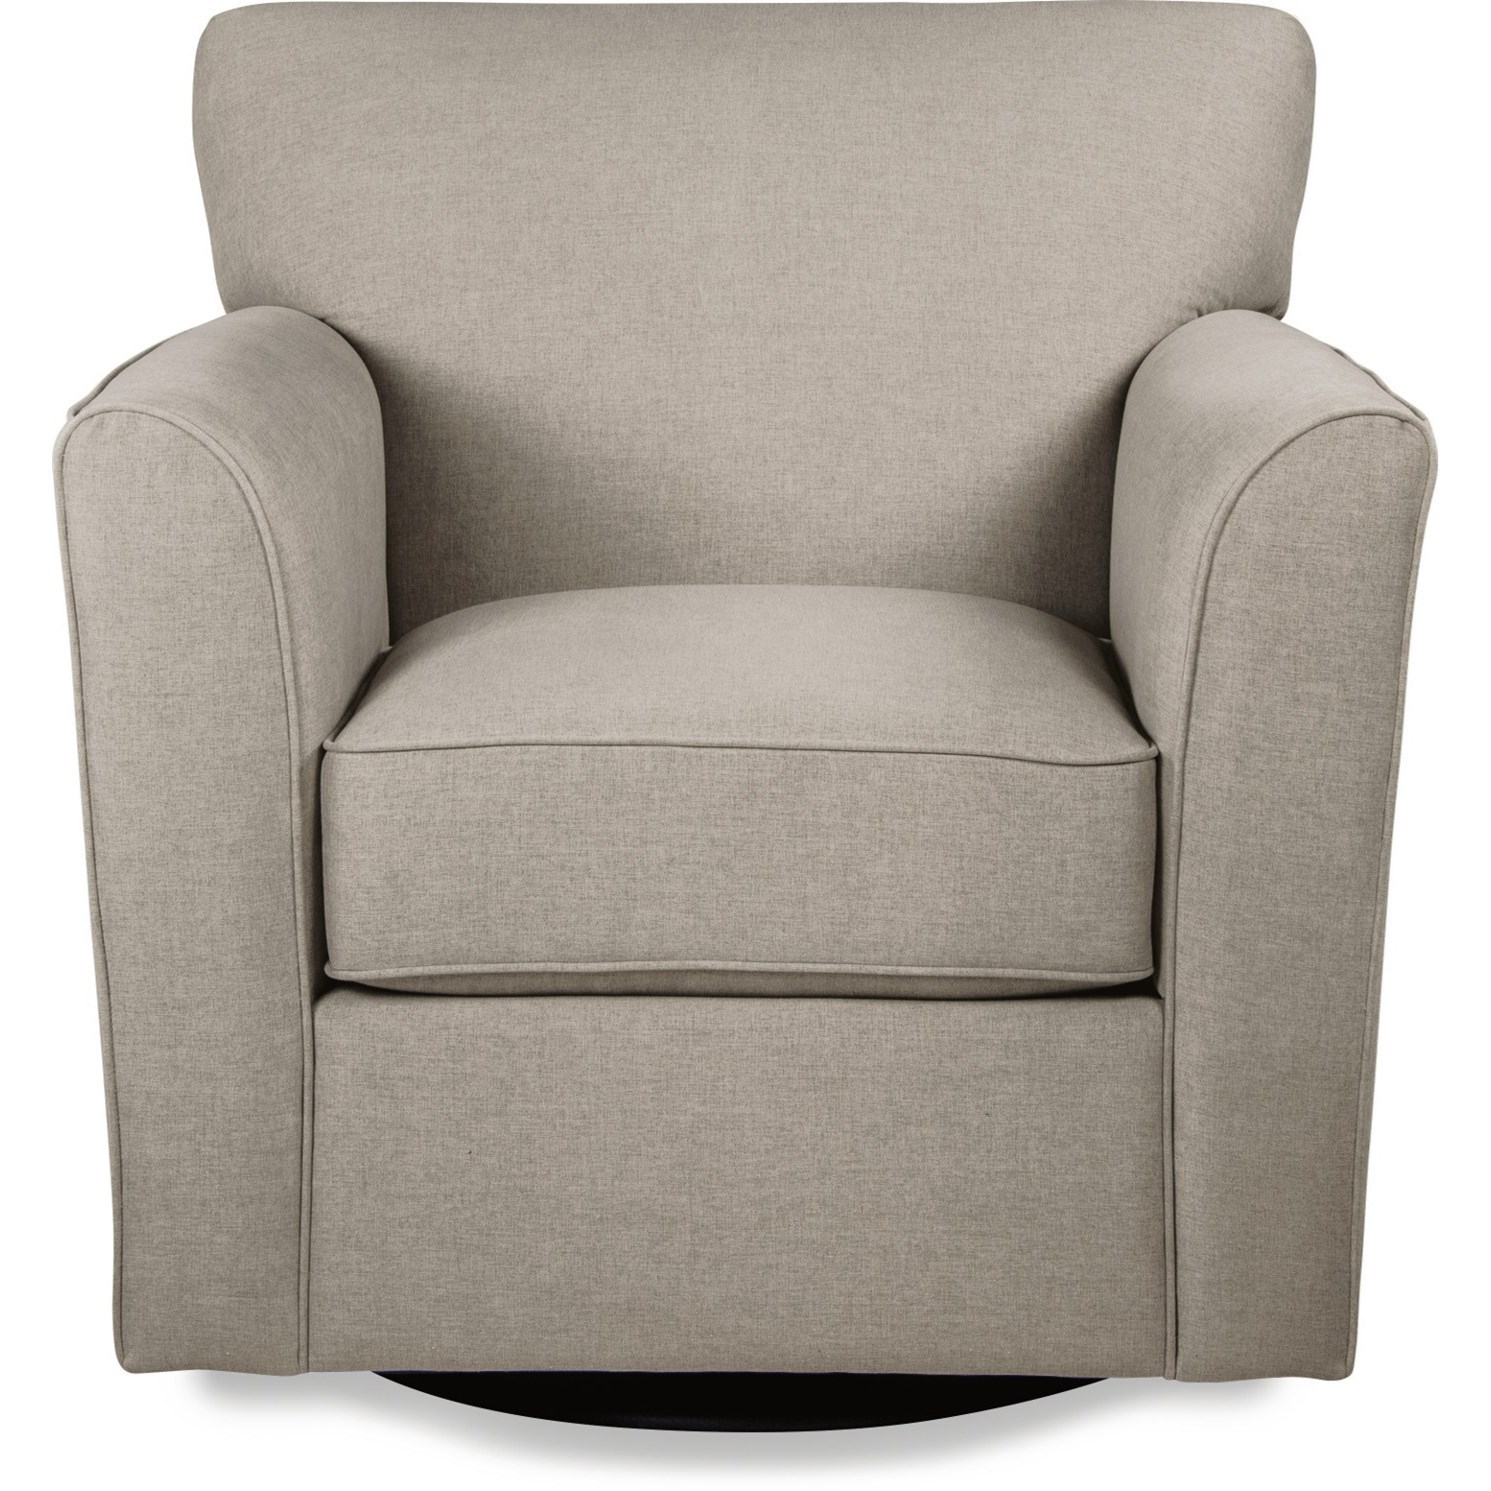 La-Z-Boy ChairsAllegra Premier Swivel Occasional Chair ...  sc 1 st  Morris Furniture : occasional chairs swivel - Cheerinfomania.Com